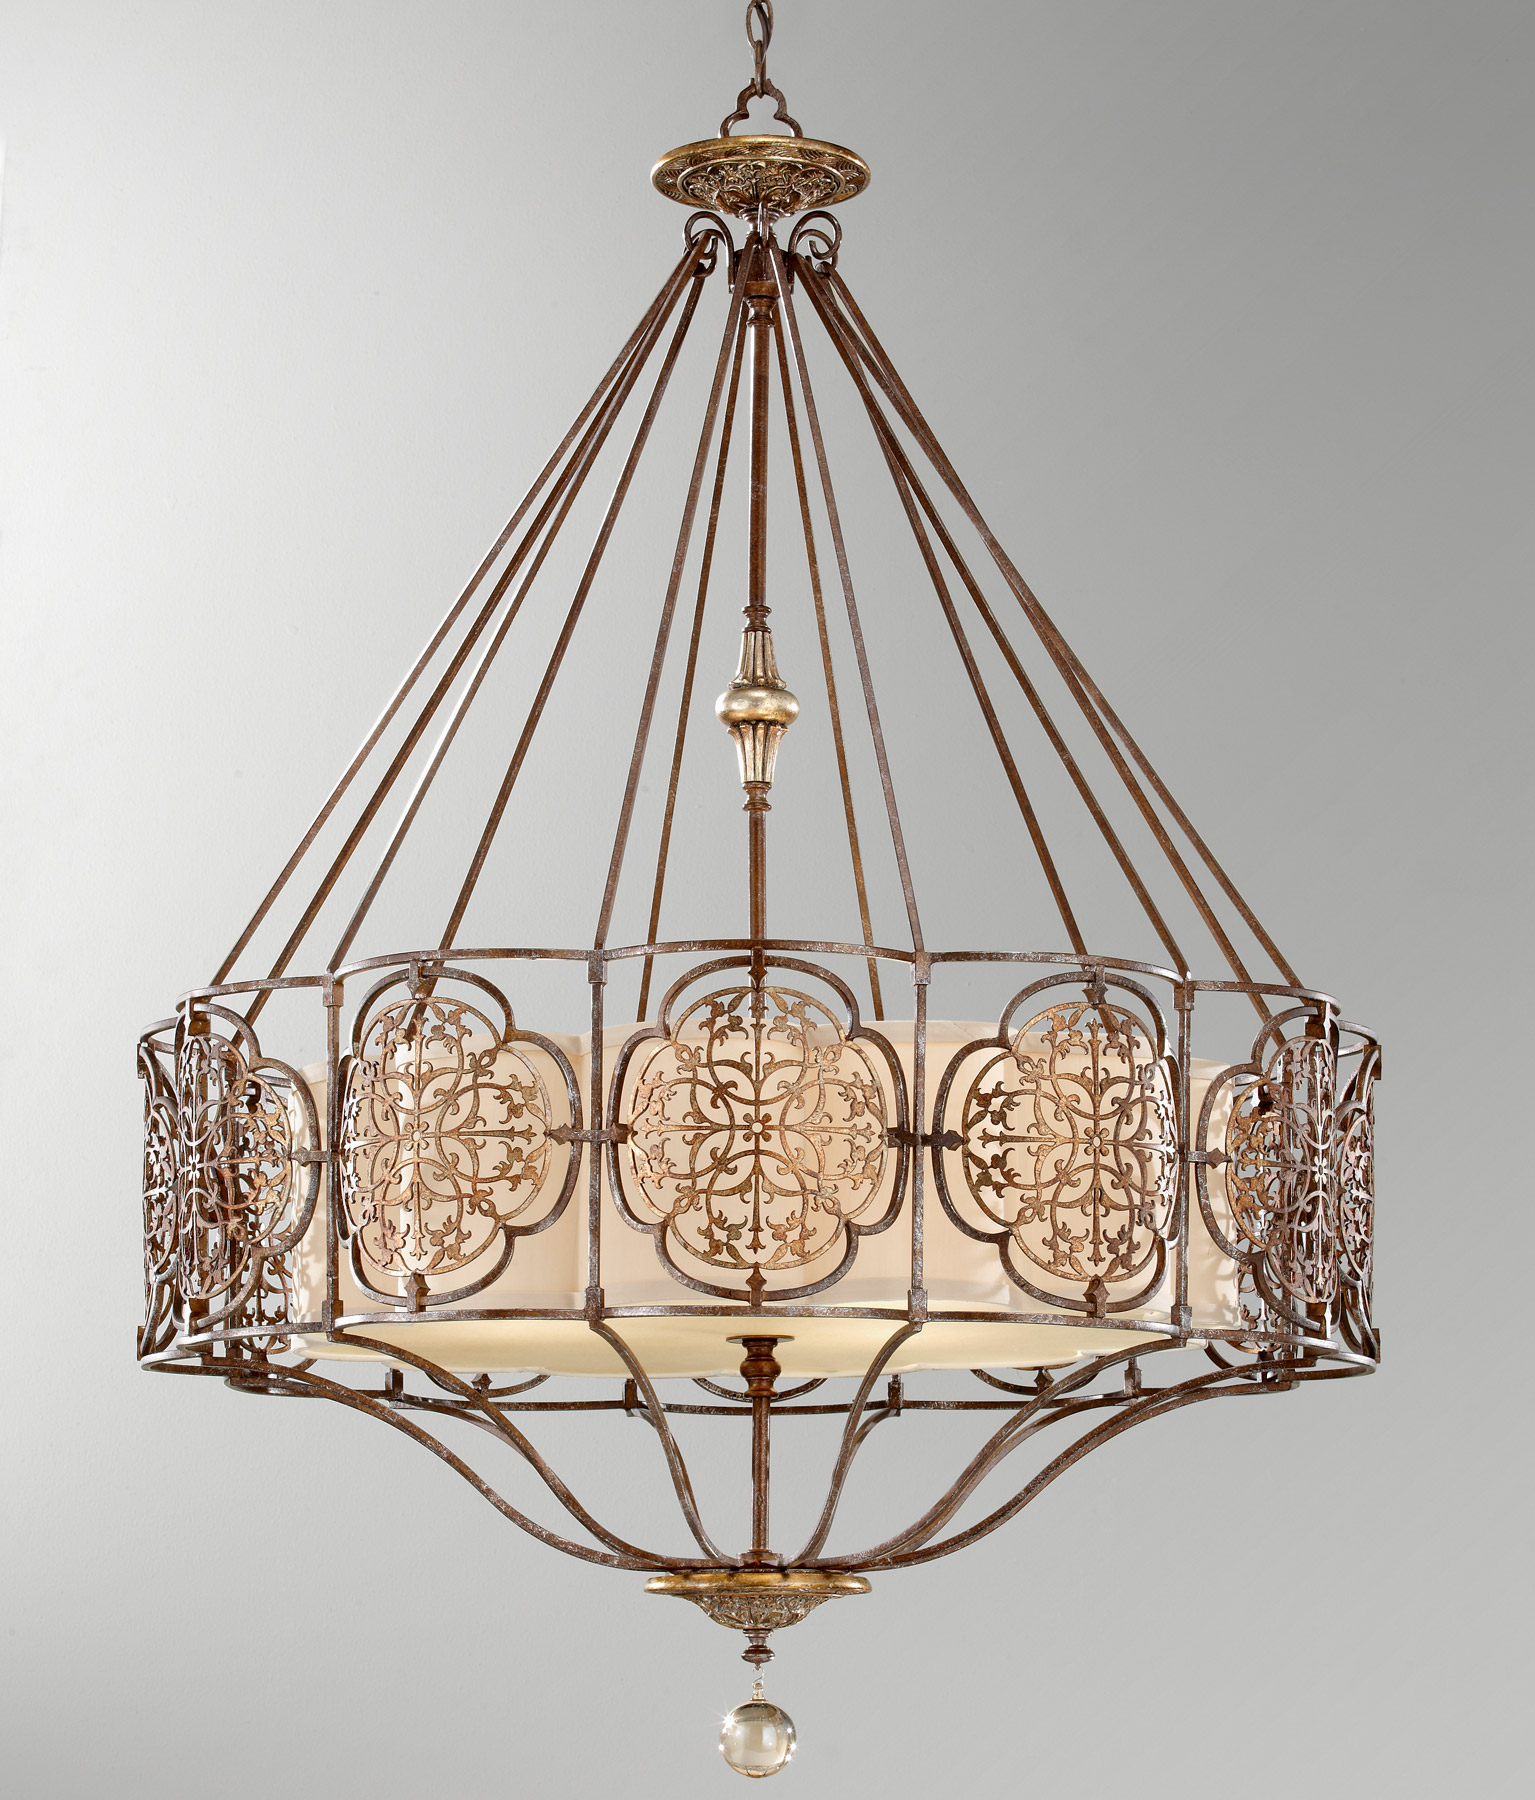 Feiss F2603 4BRB OBZ Marcella Four Light Chandelier